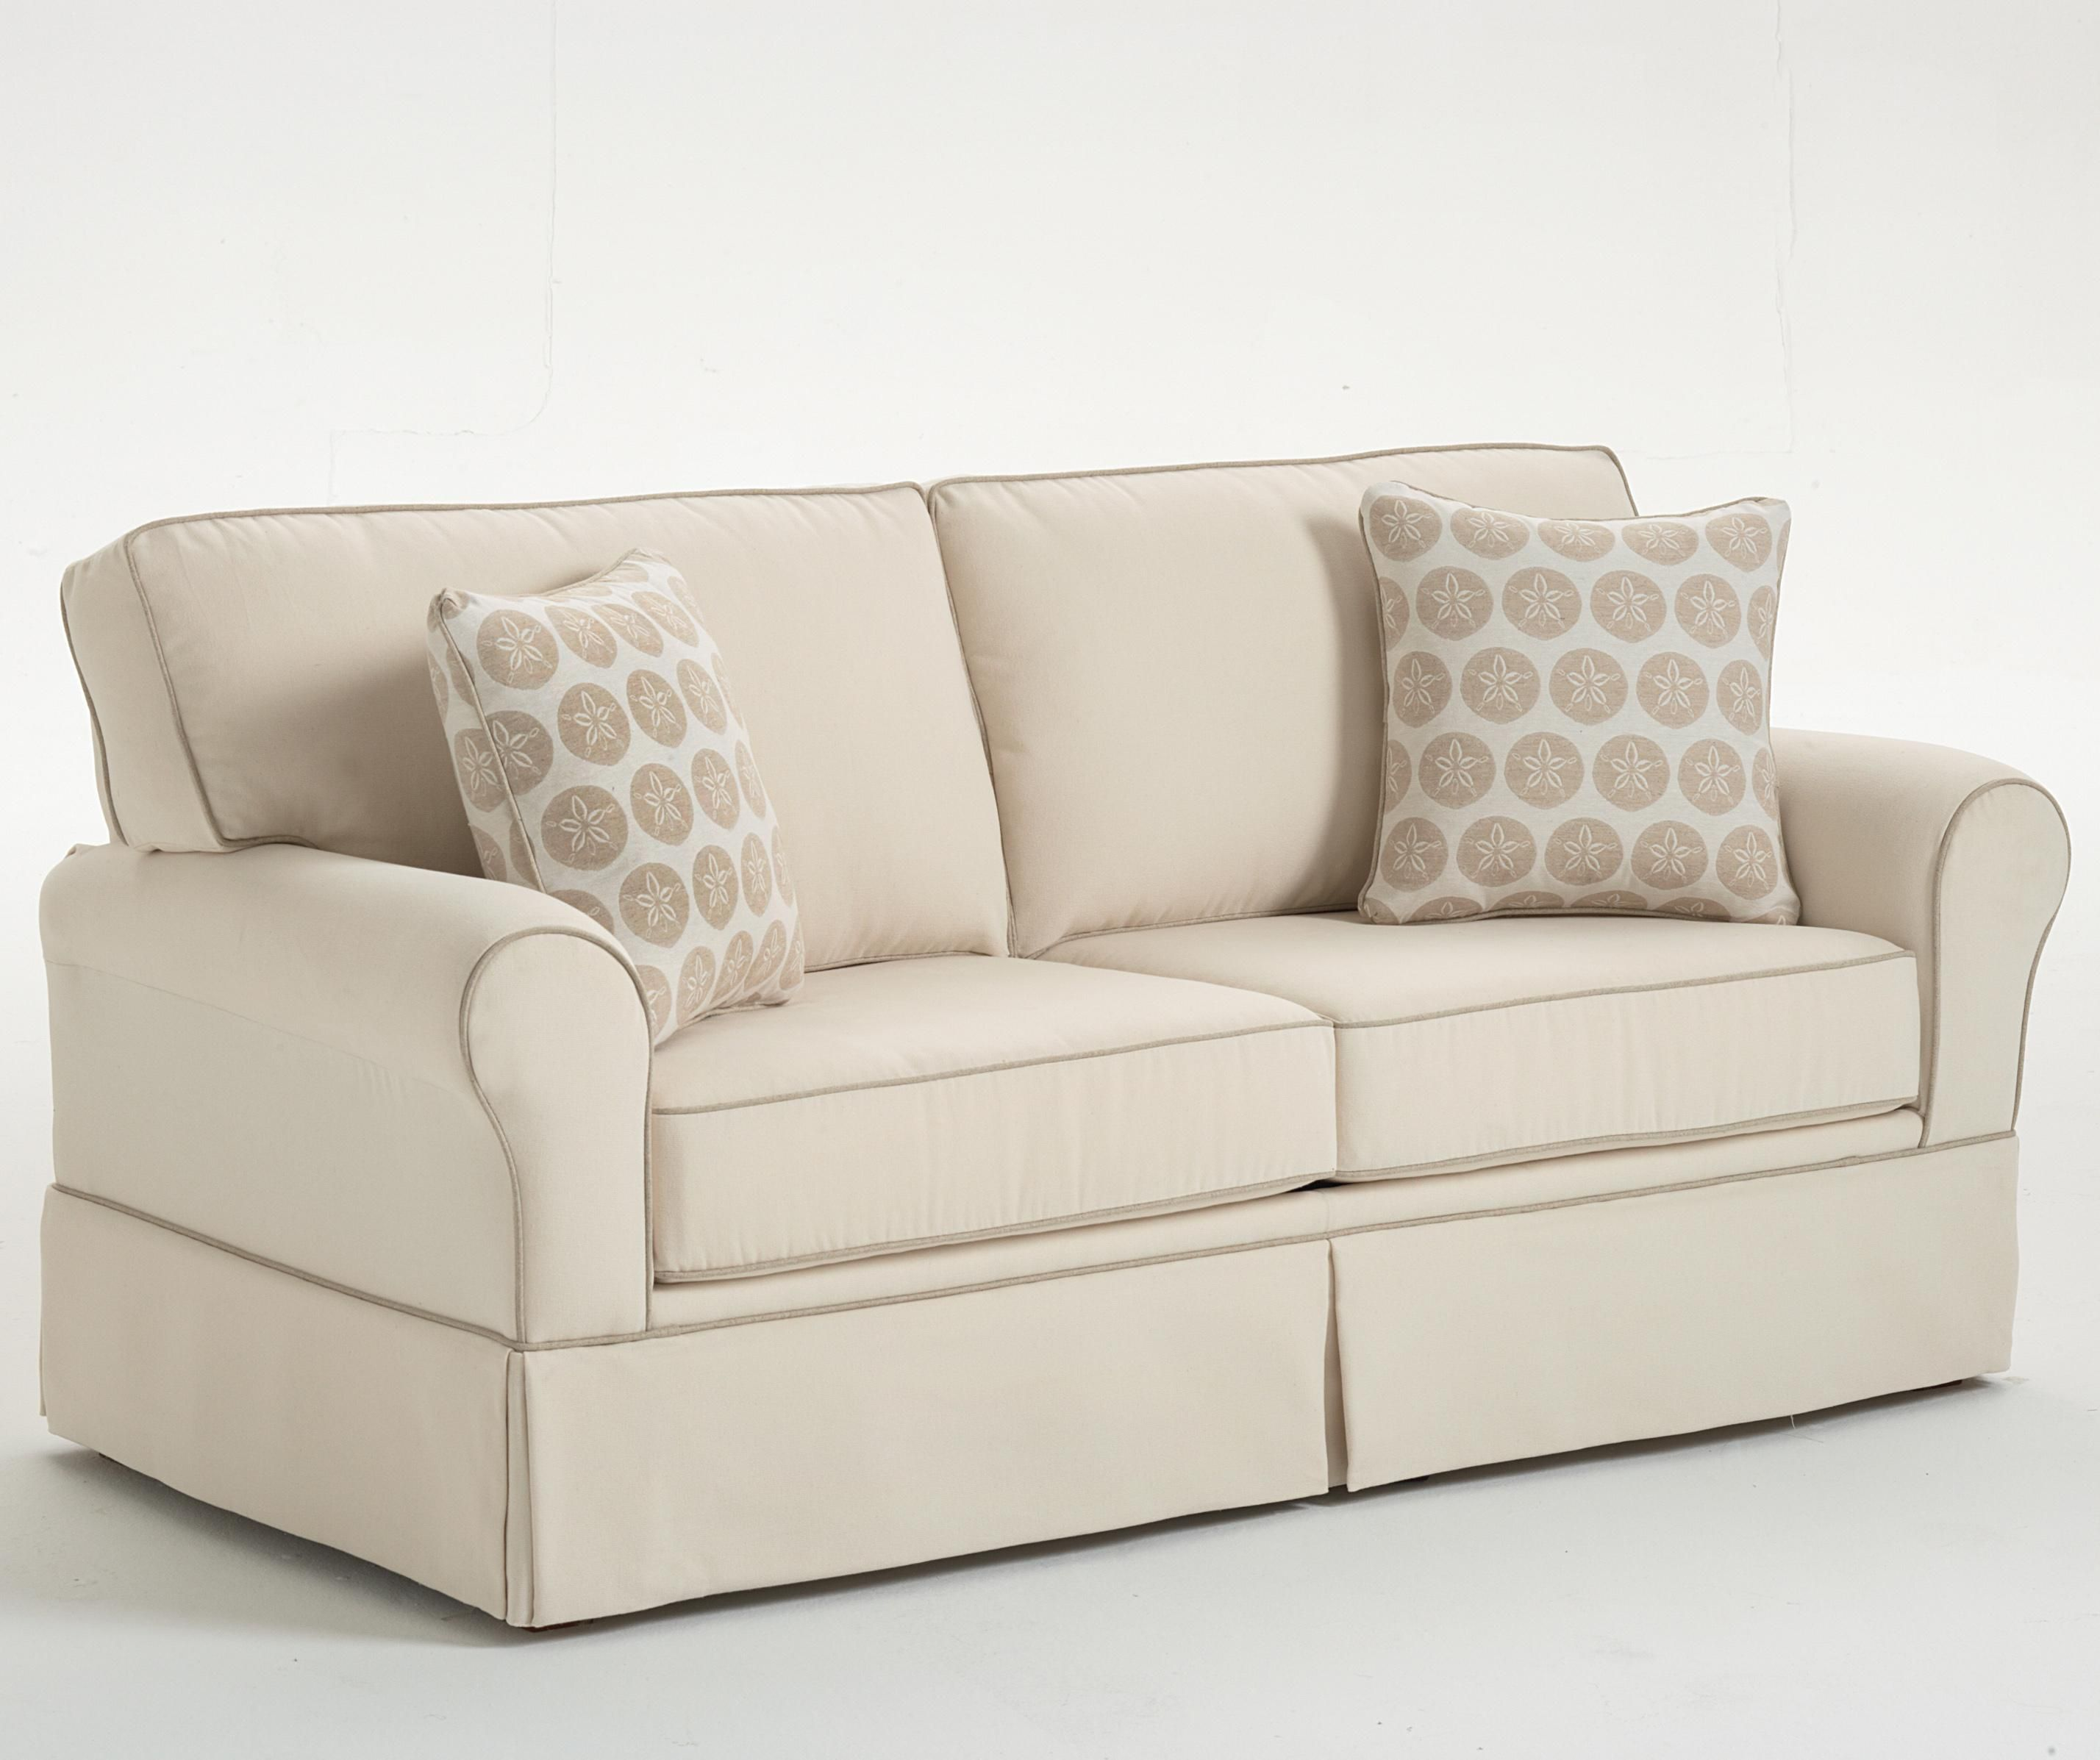 Kishi STATIONARY SOFA W/FULL MATTRESS SLEEPER by Best Home